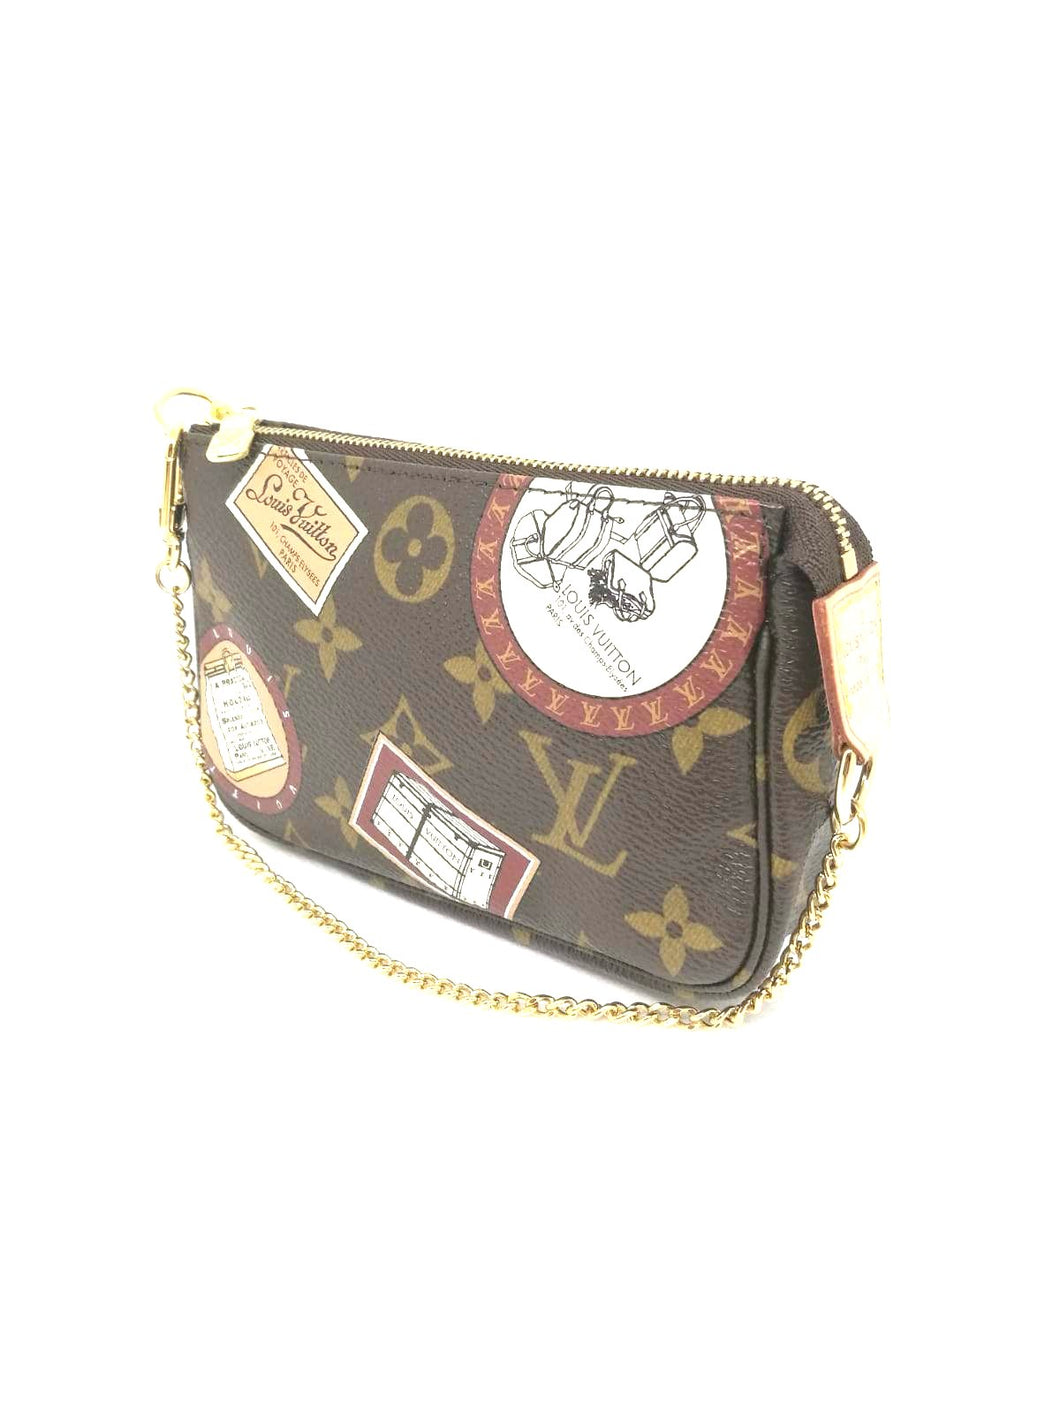 Louis Vuitton mini pochette patch monogram